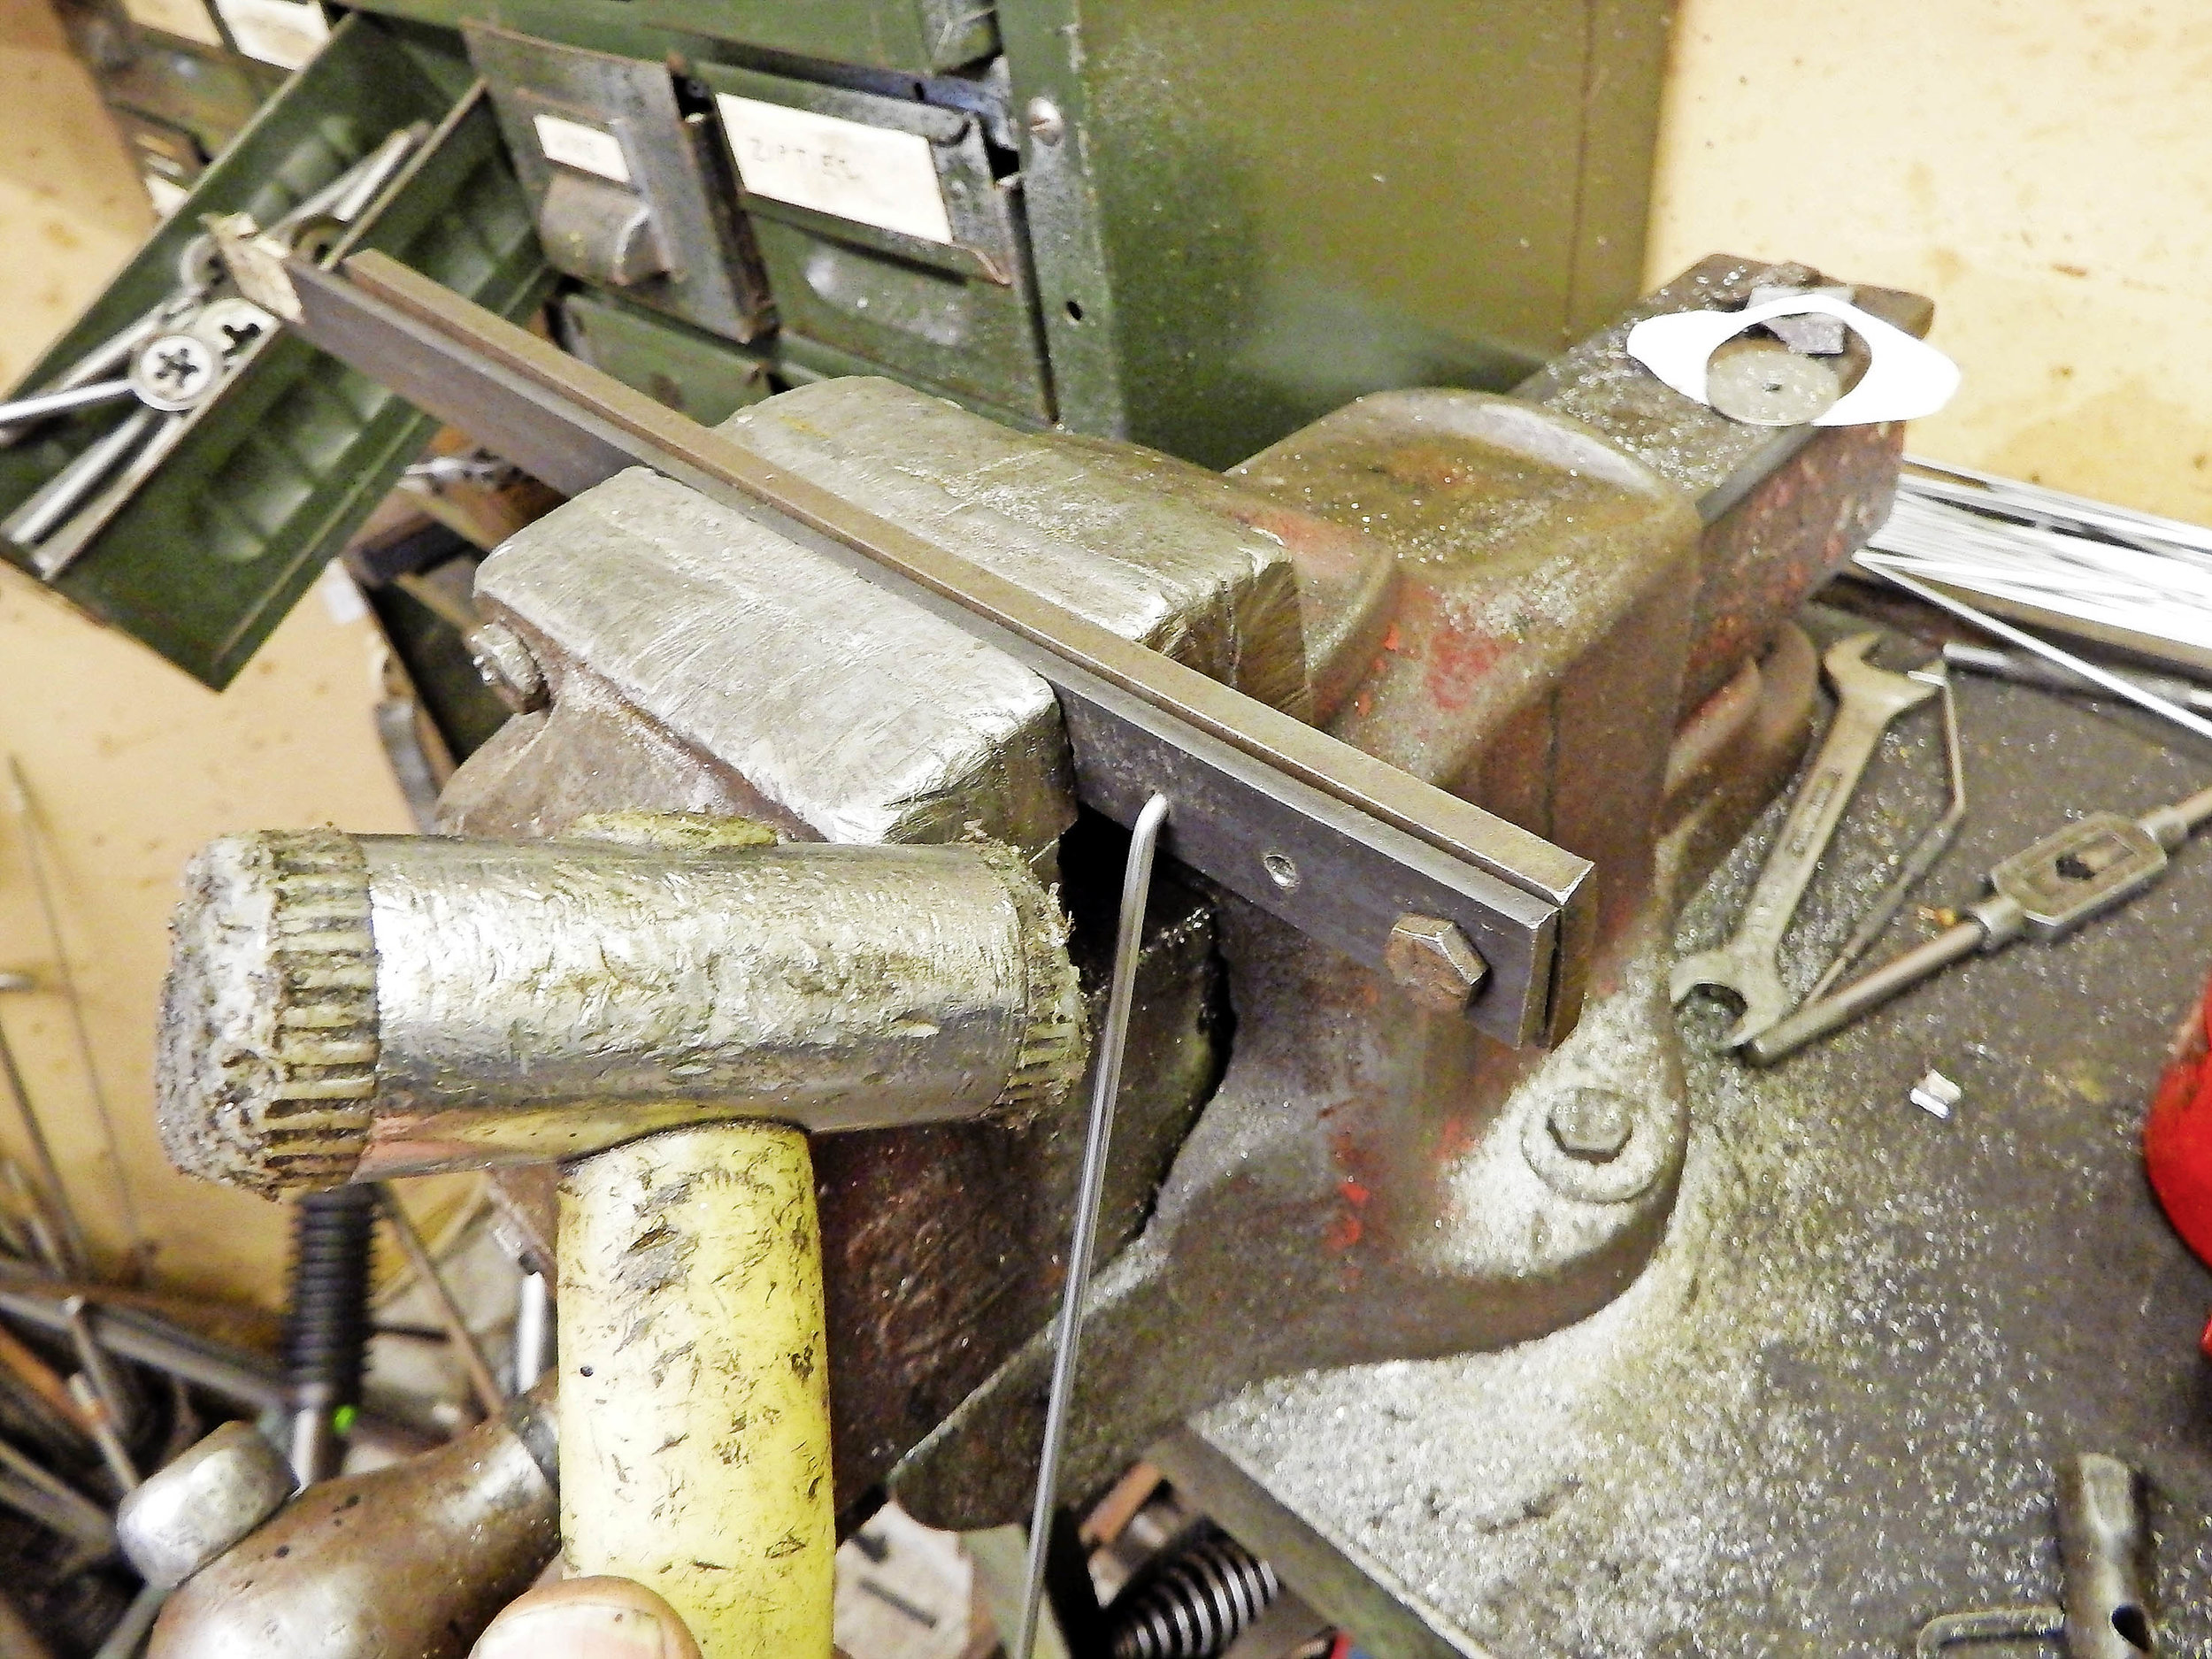 2.  Insert the spoke into the jig, close it and tighten it in the bench vice. With the head gripped securely, you can now use a soft hammer to bend the spoke to the desired angle.